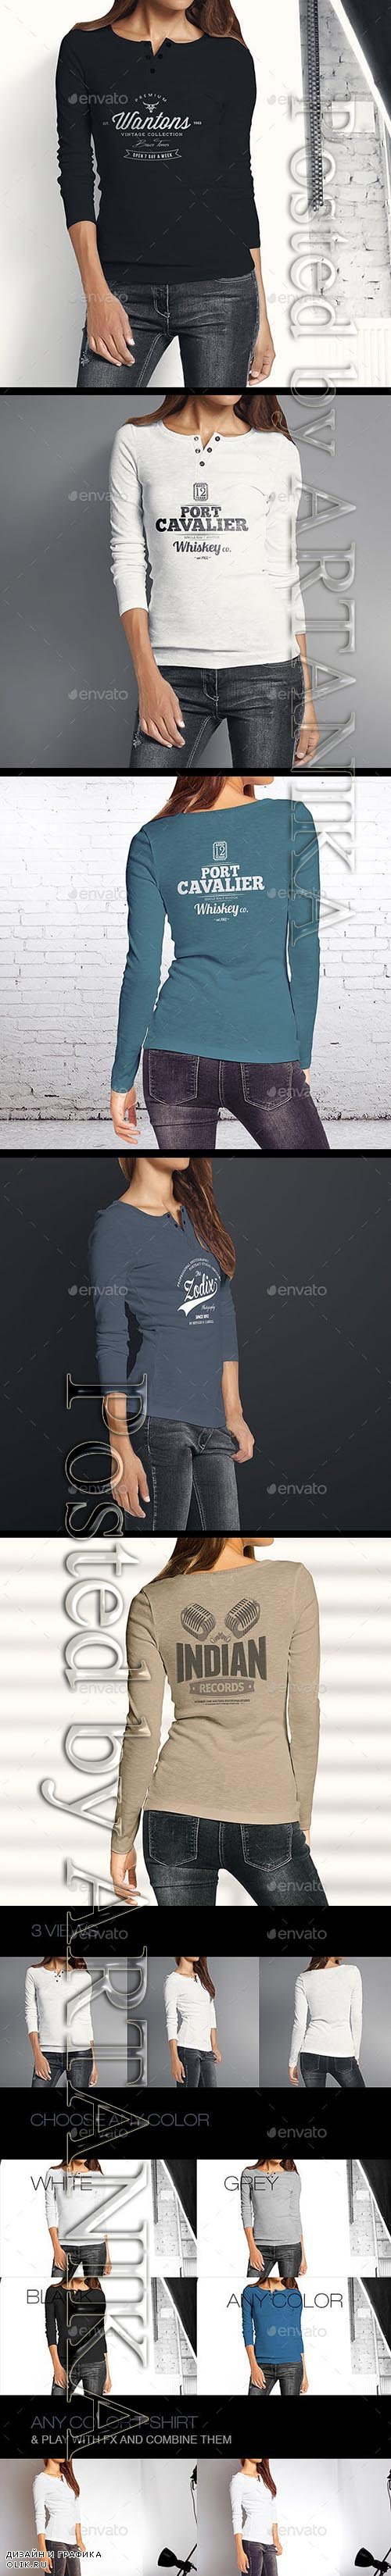 GraphicRiver - Woman Longsleeve Shirt Mock-up 9610673